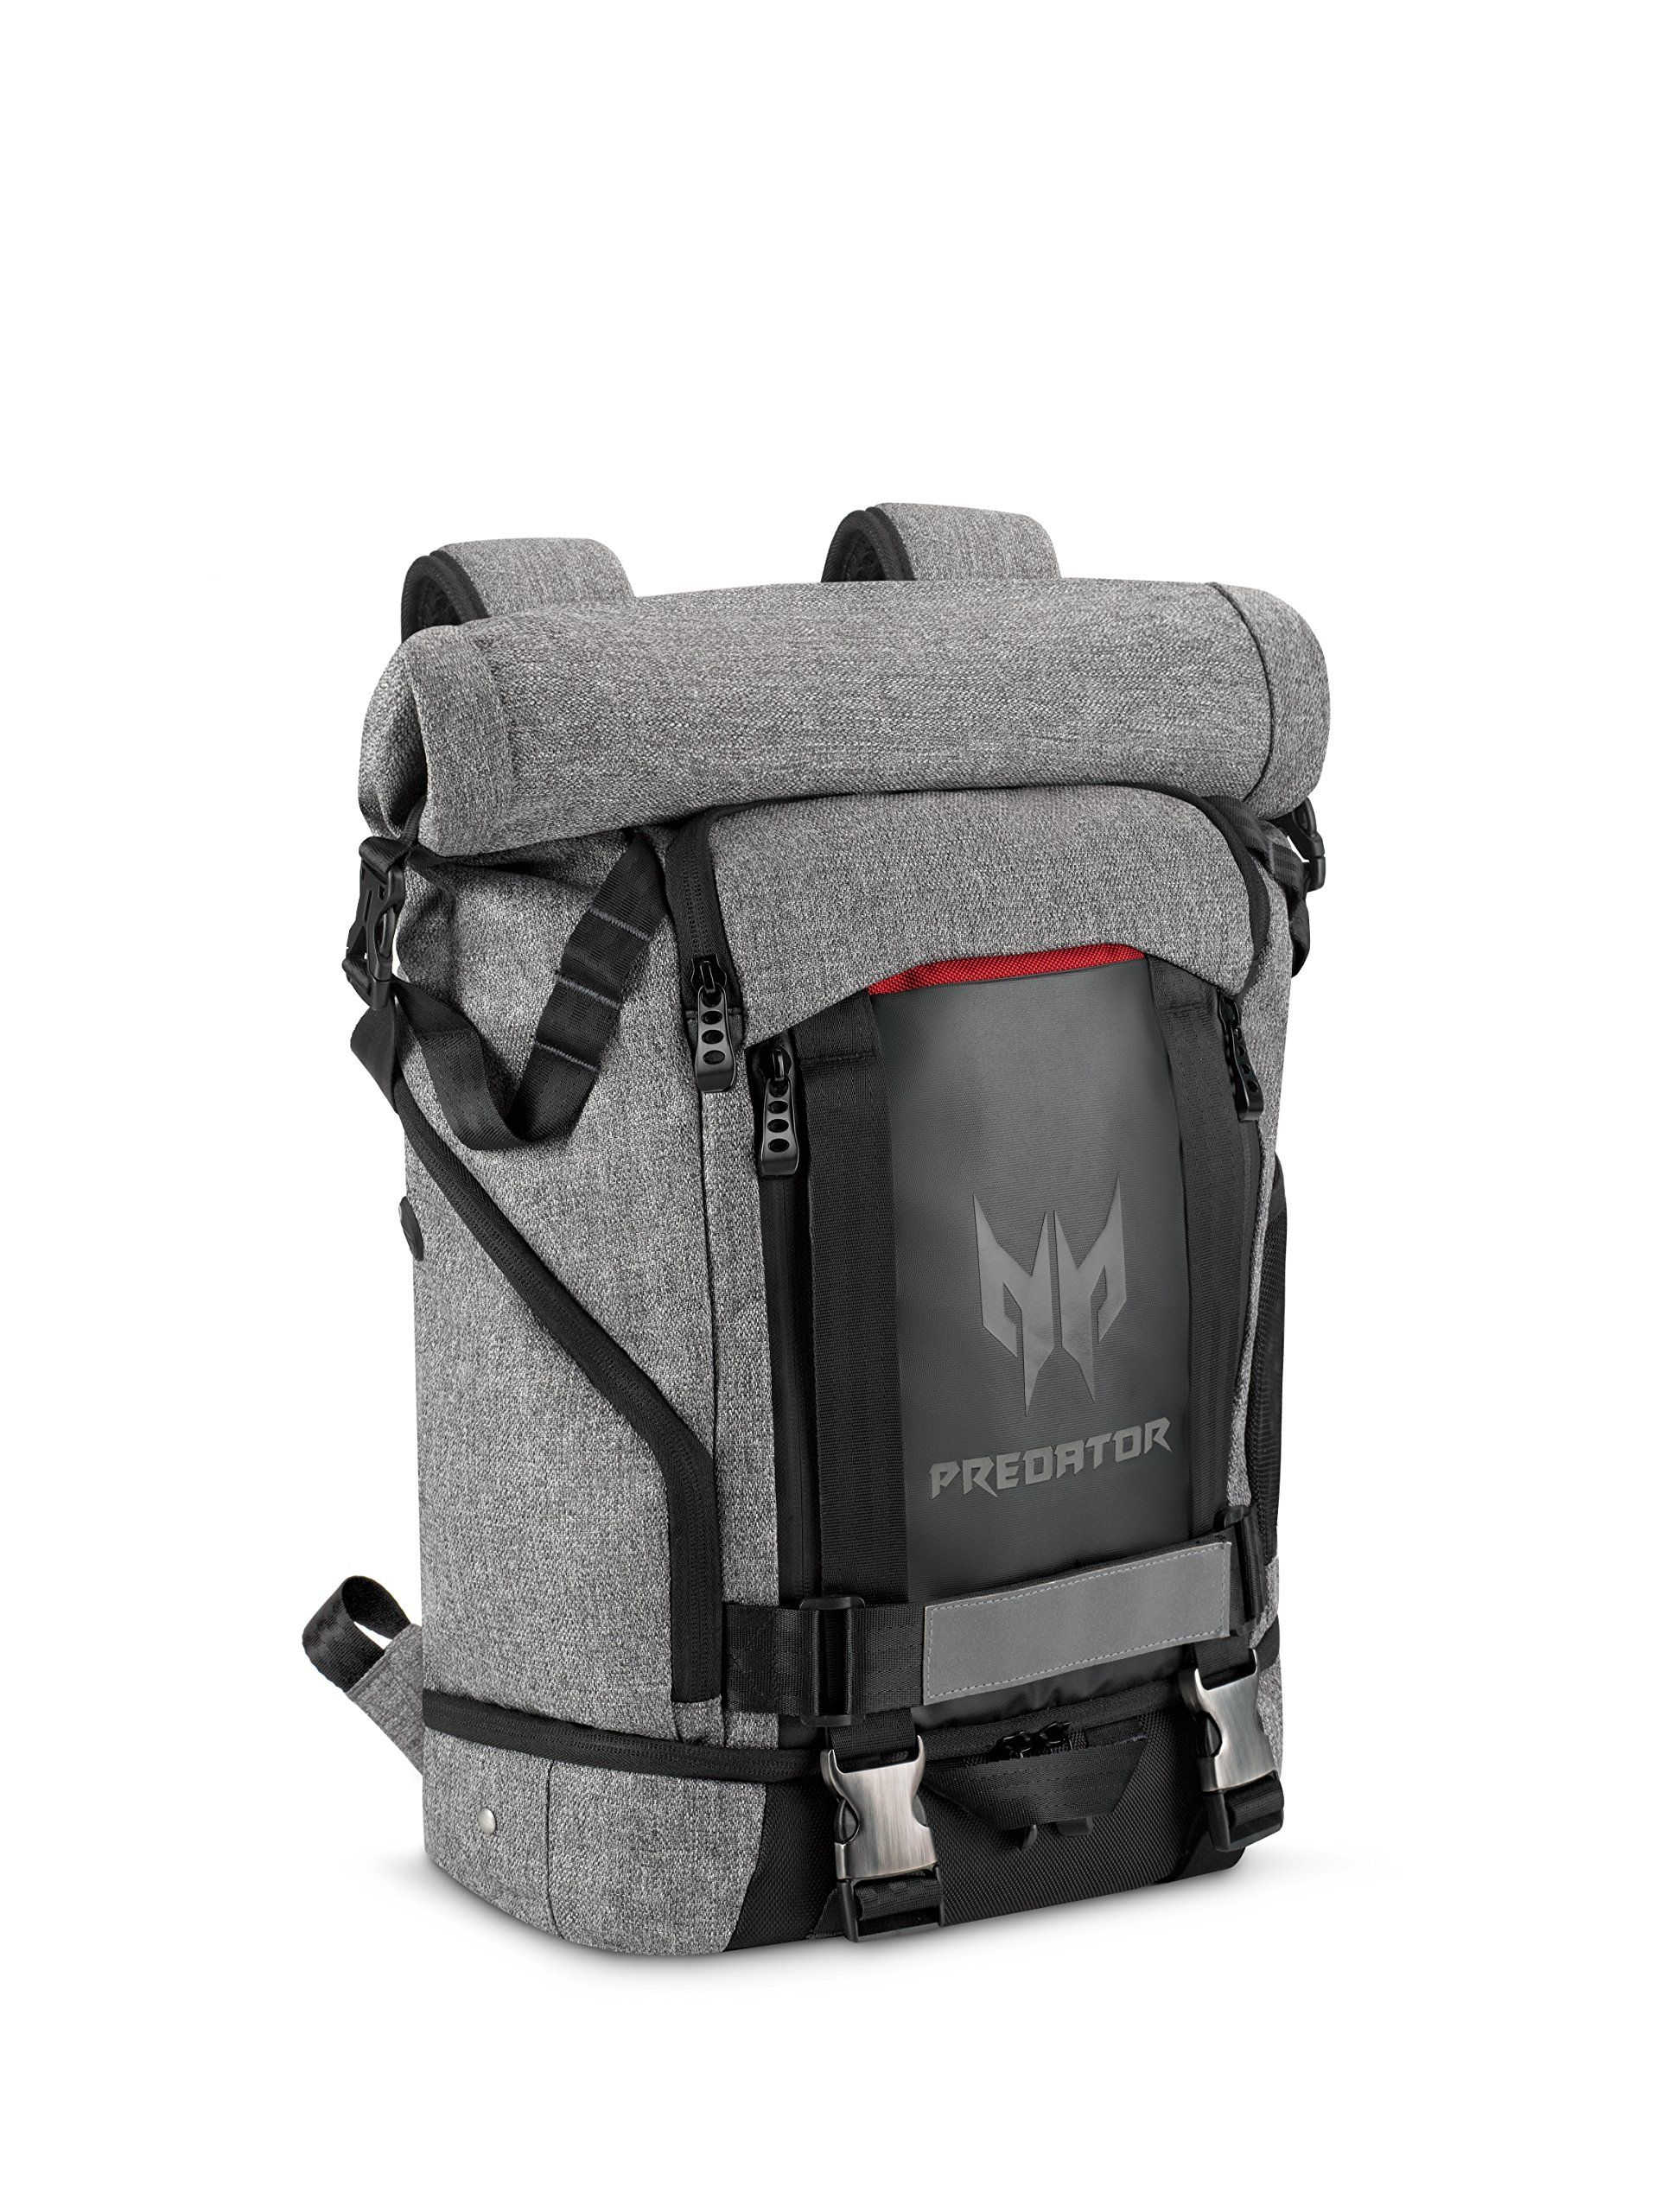 """Acer Predator Gaming Rolltop Backpack 15.6"""" for all Gaming Laptops –  Expandable space up to 35.5L capacity 88b2b89c6e0d9"""